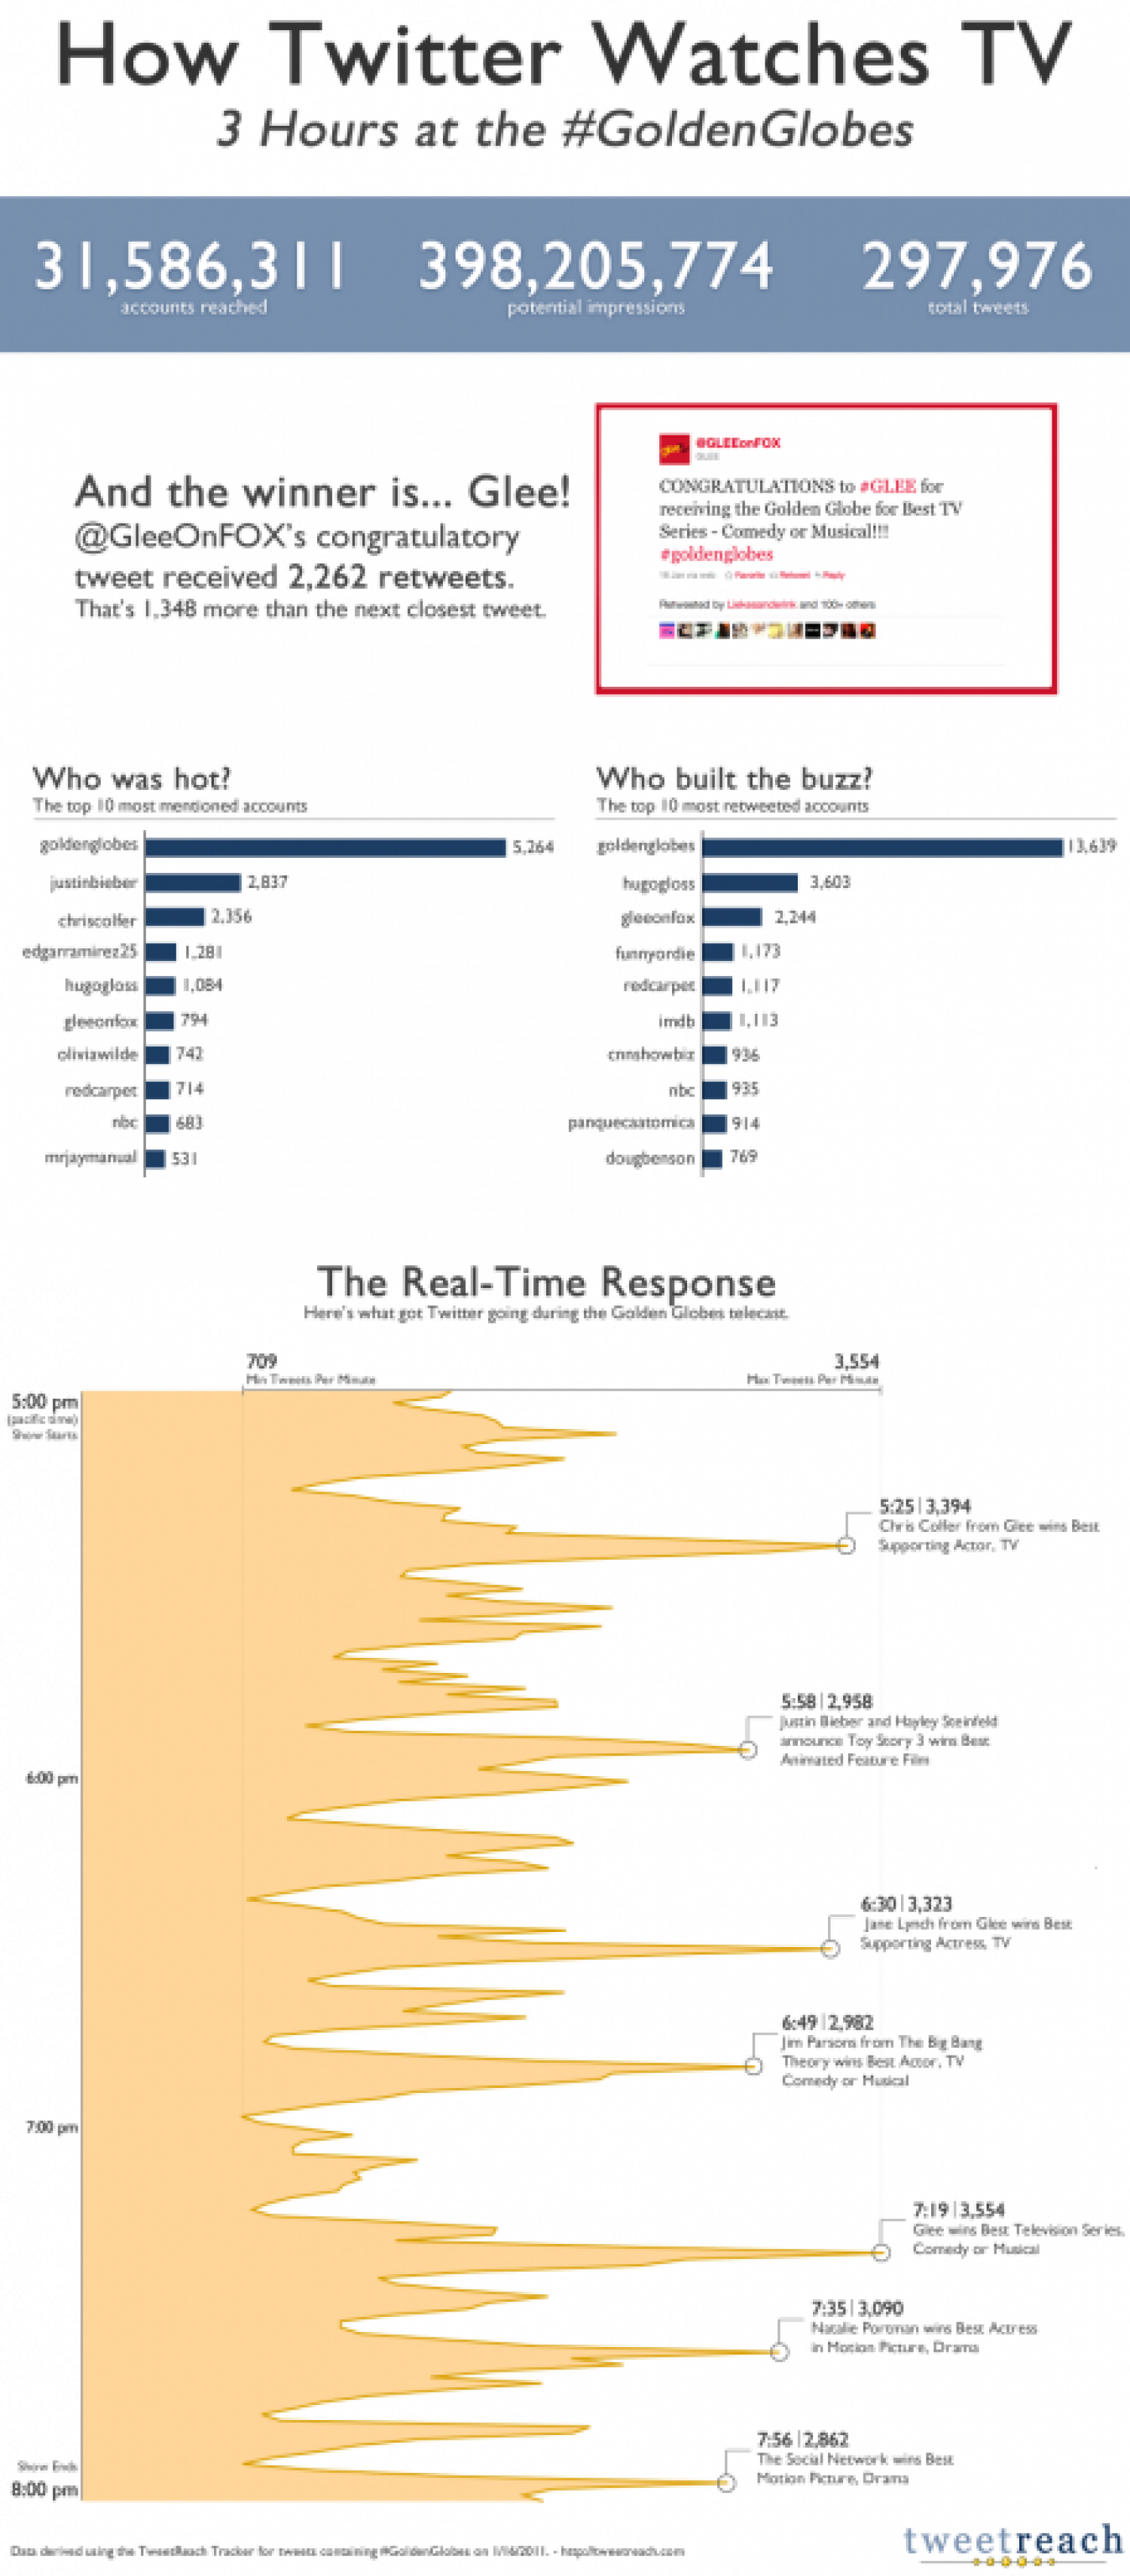 How Twitter Watches TV Infographic